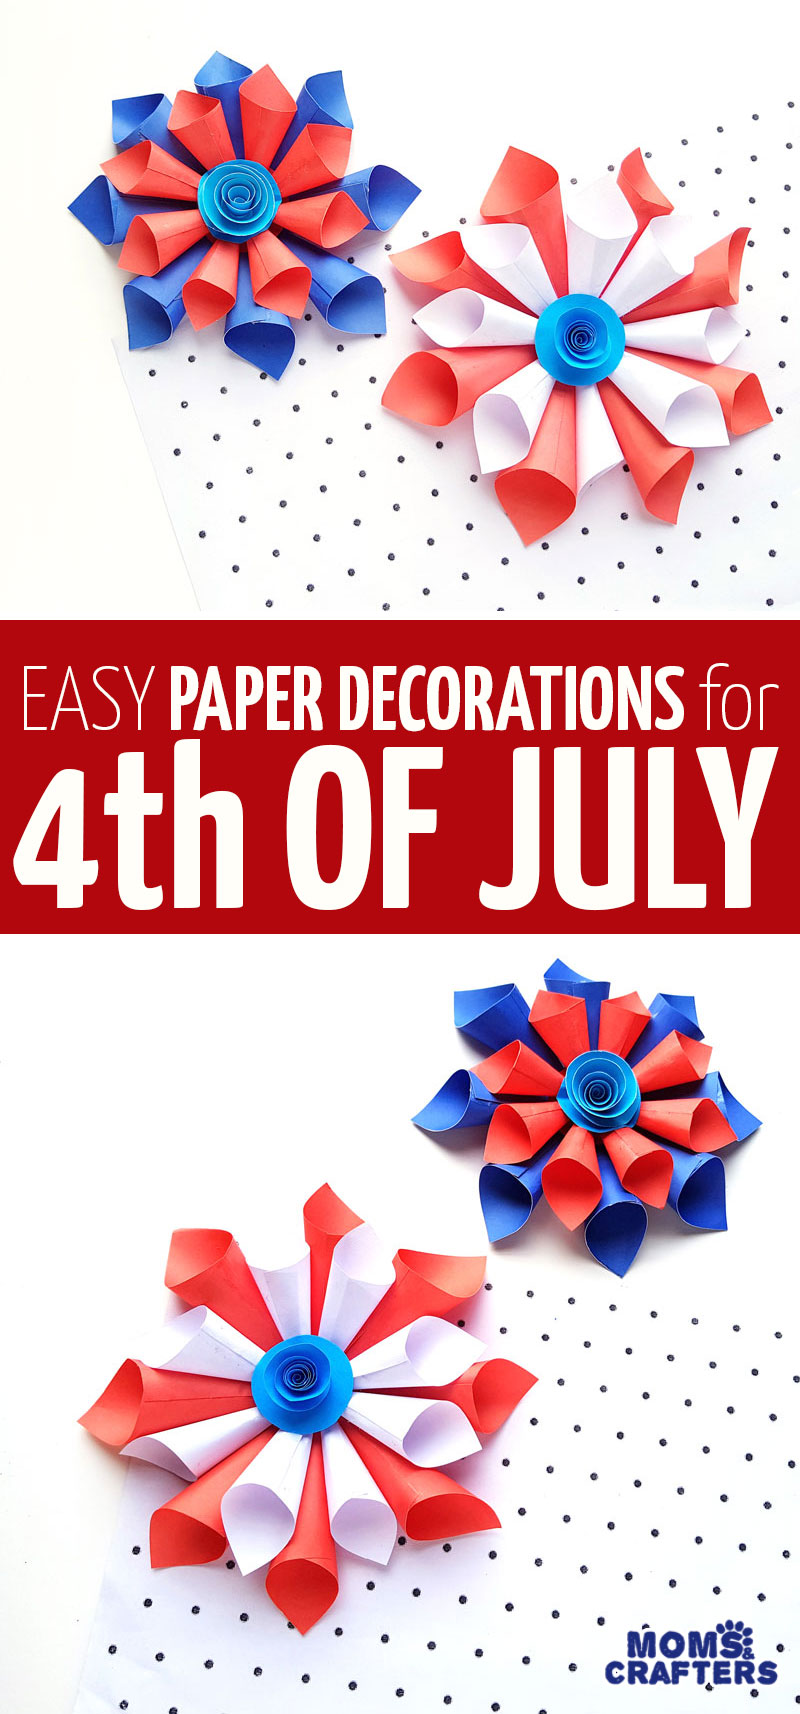 Clcik for cool paper 4th of July decorations made from paper cones in a starburst shape with a rosette! These fun Patriotic independence day decor ideas are fun crafts for kids teens tweens and grown-ups.